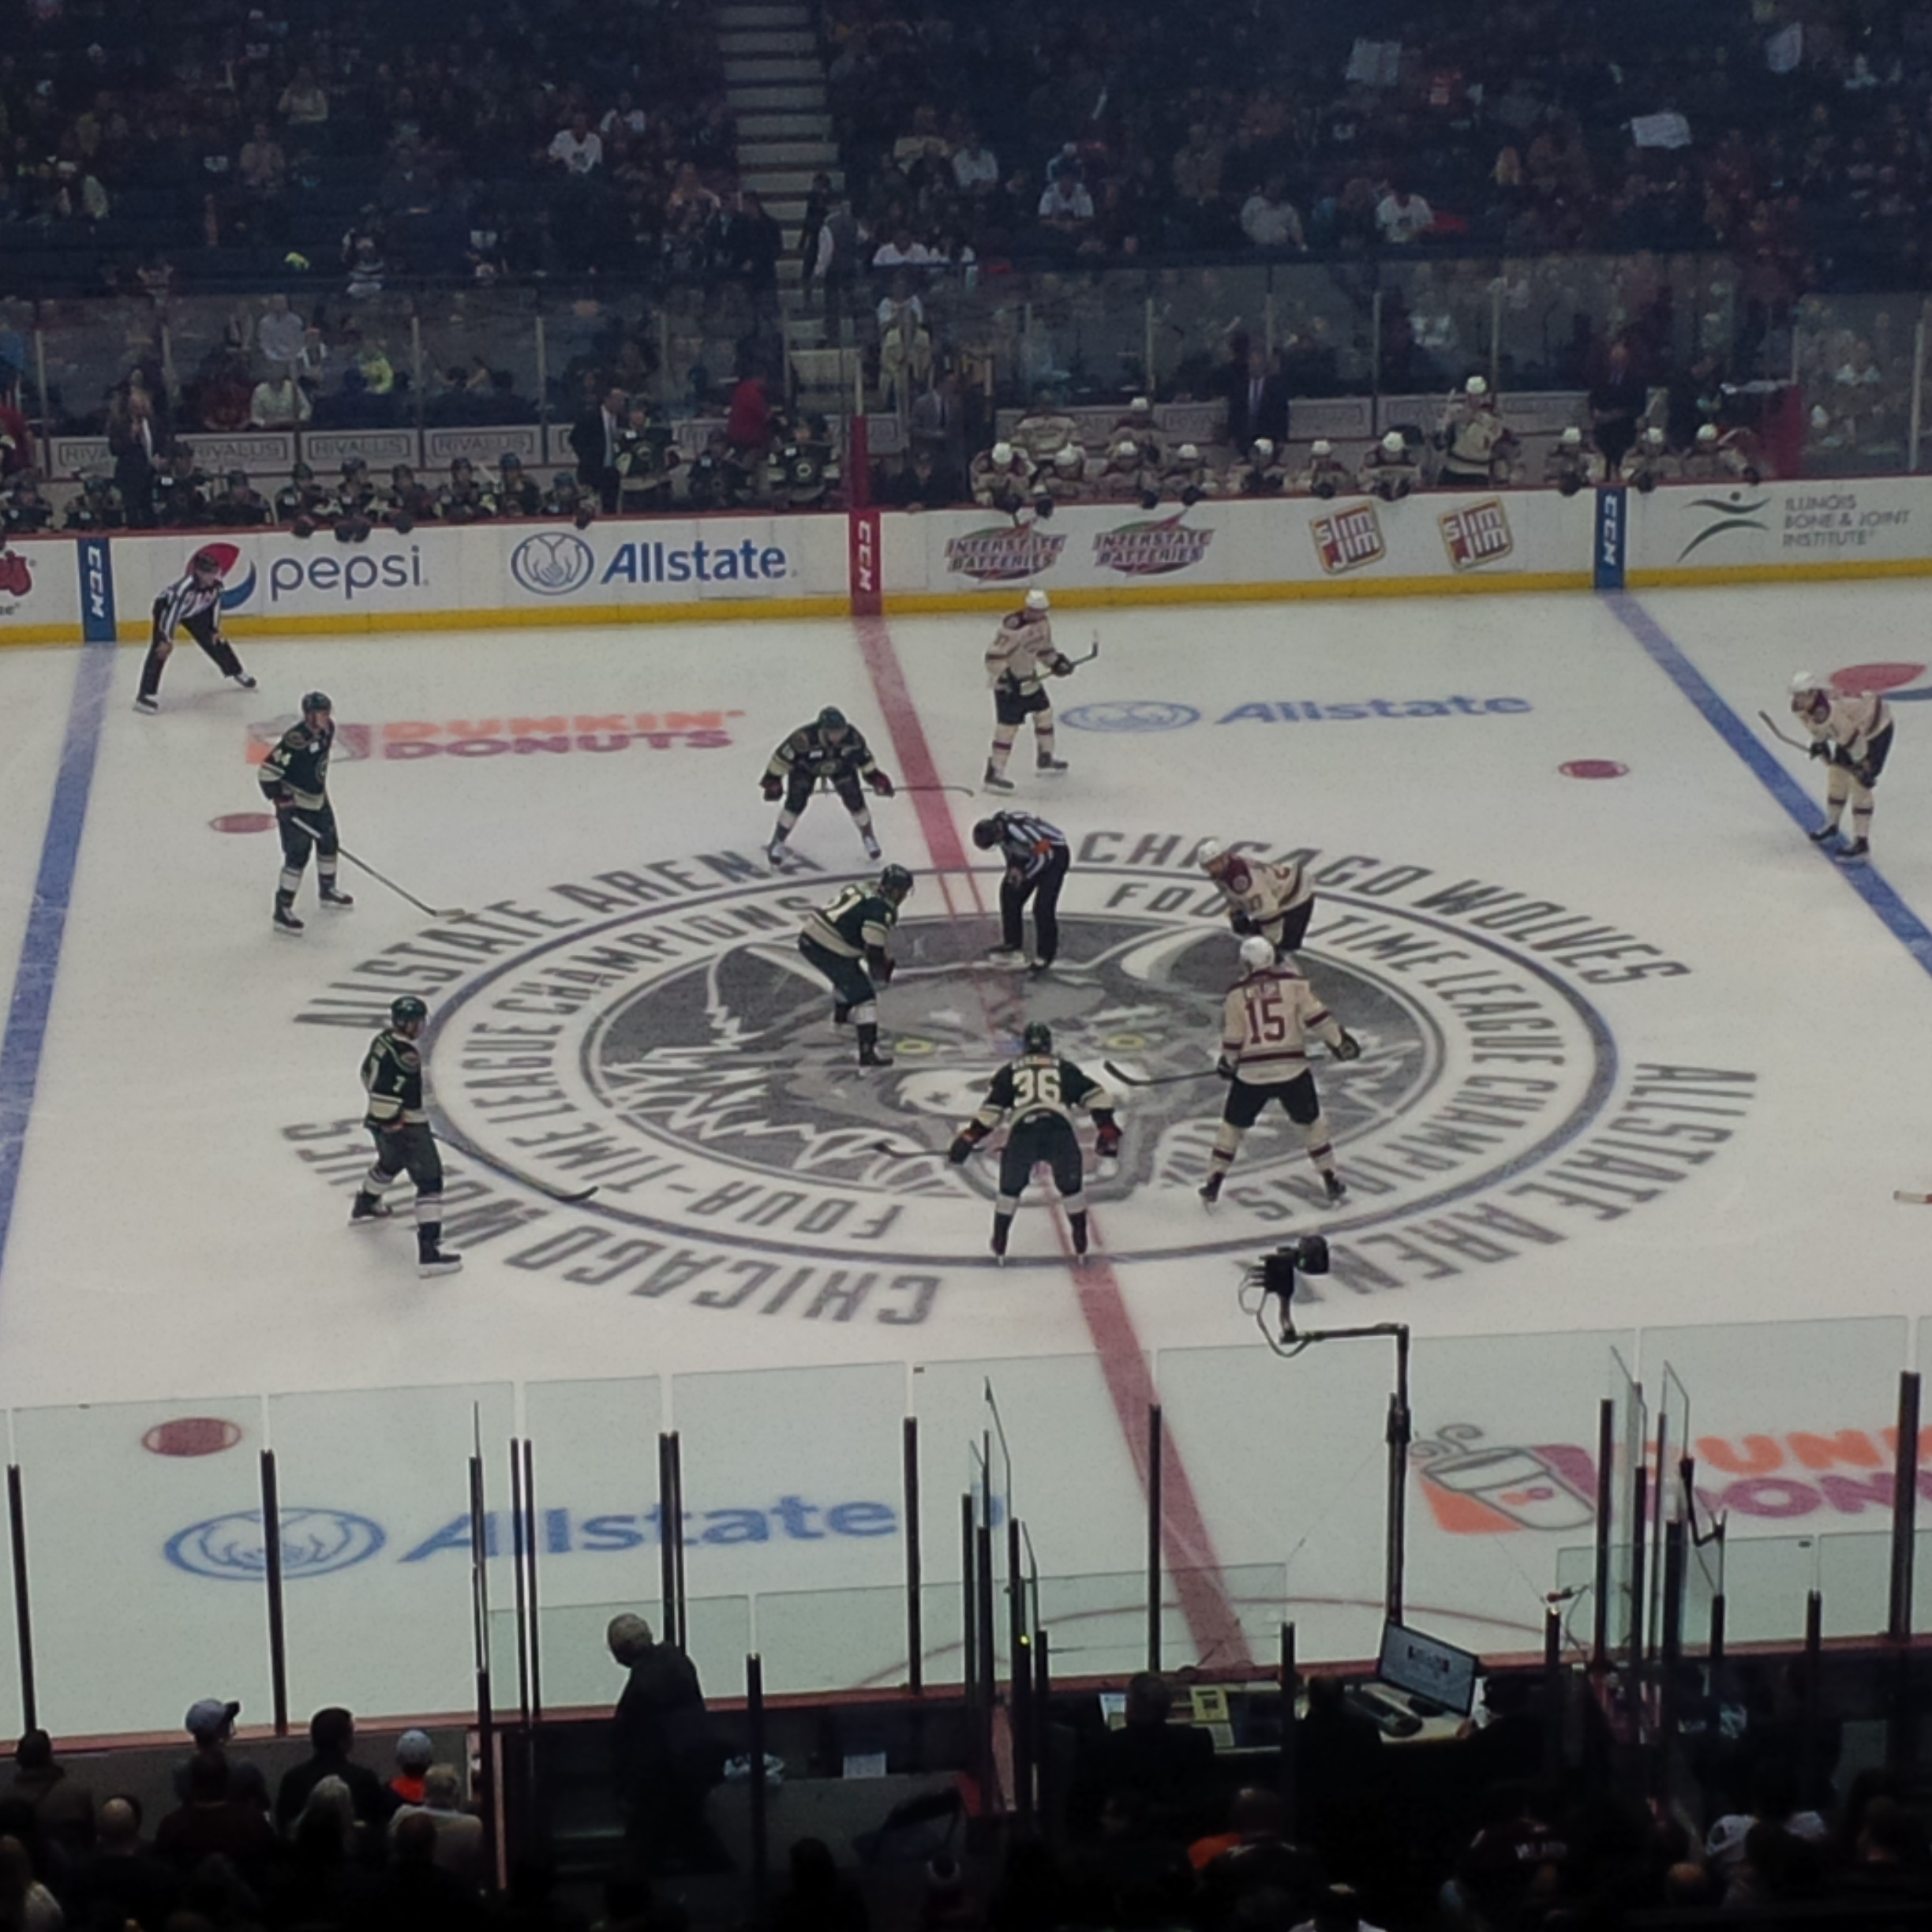 The Wolves (white jerseys) opening face-off against Iowa.